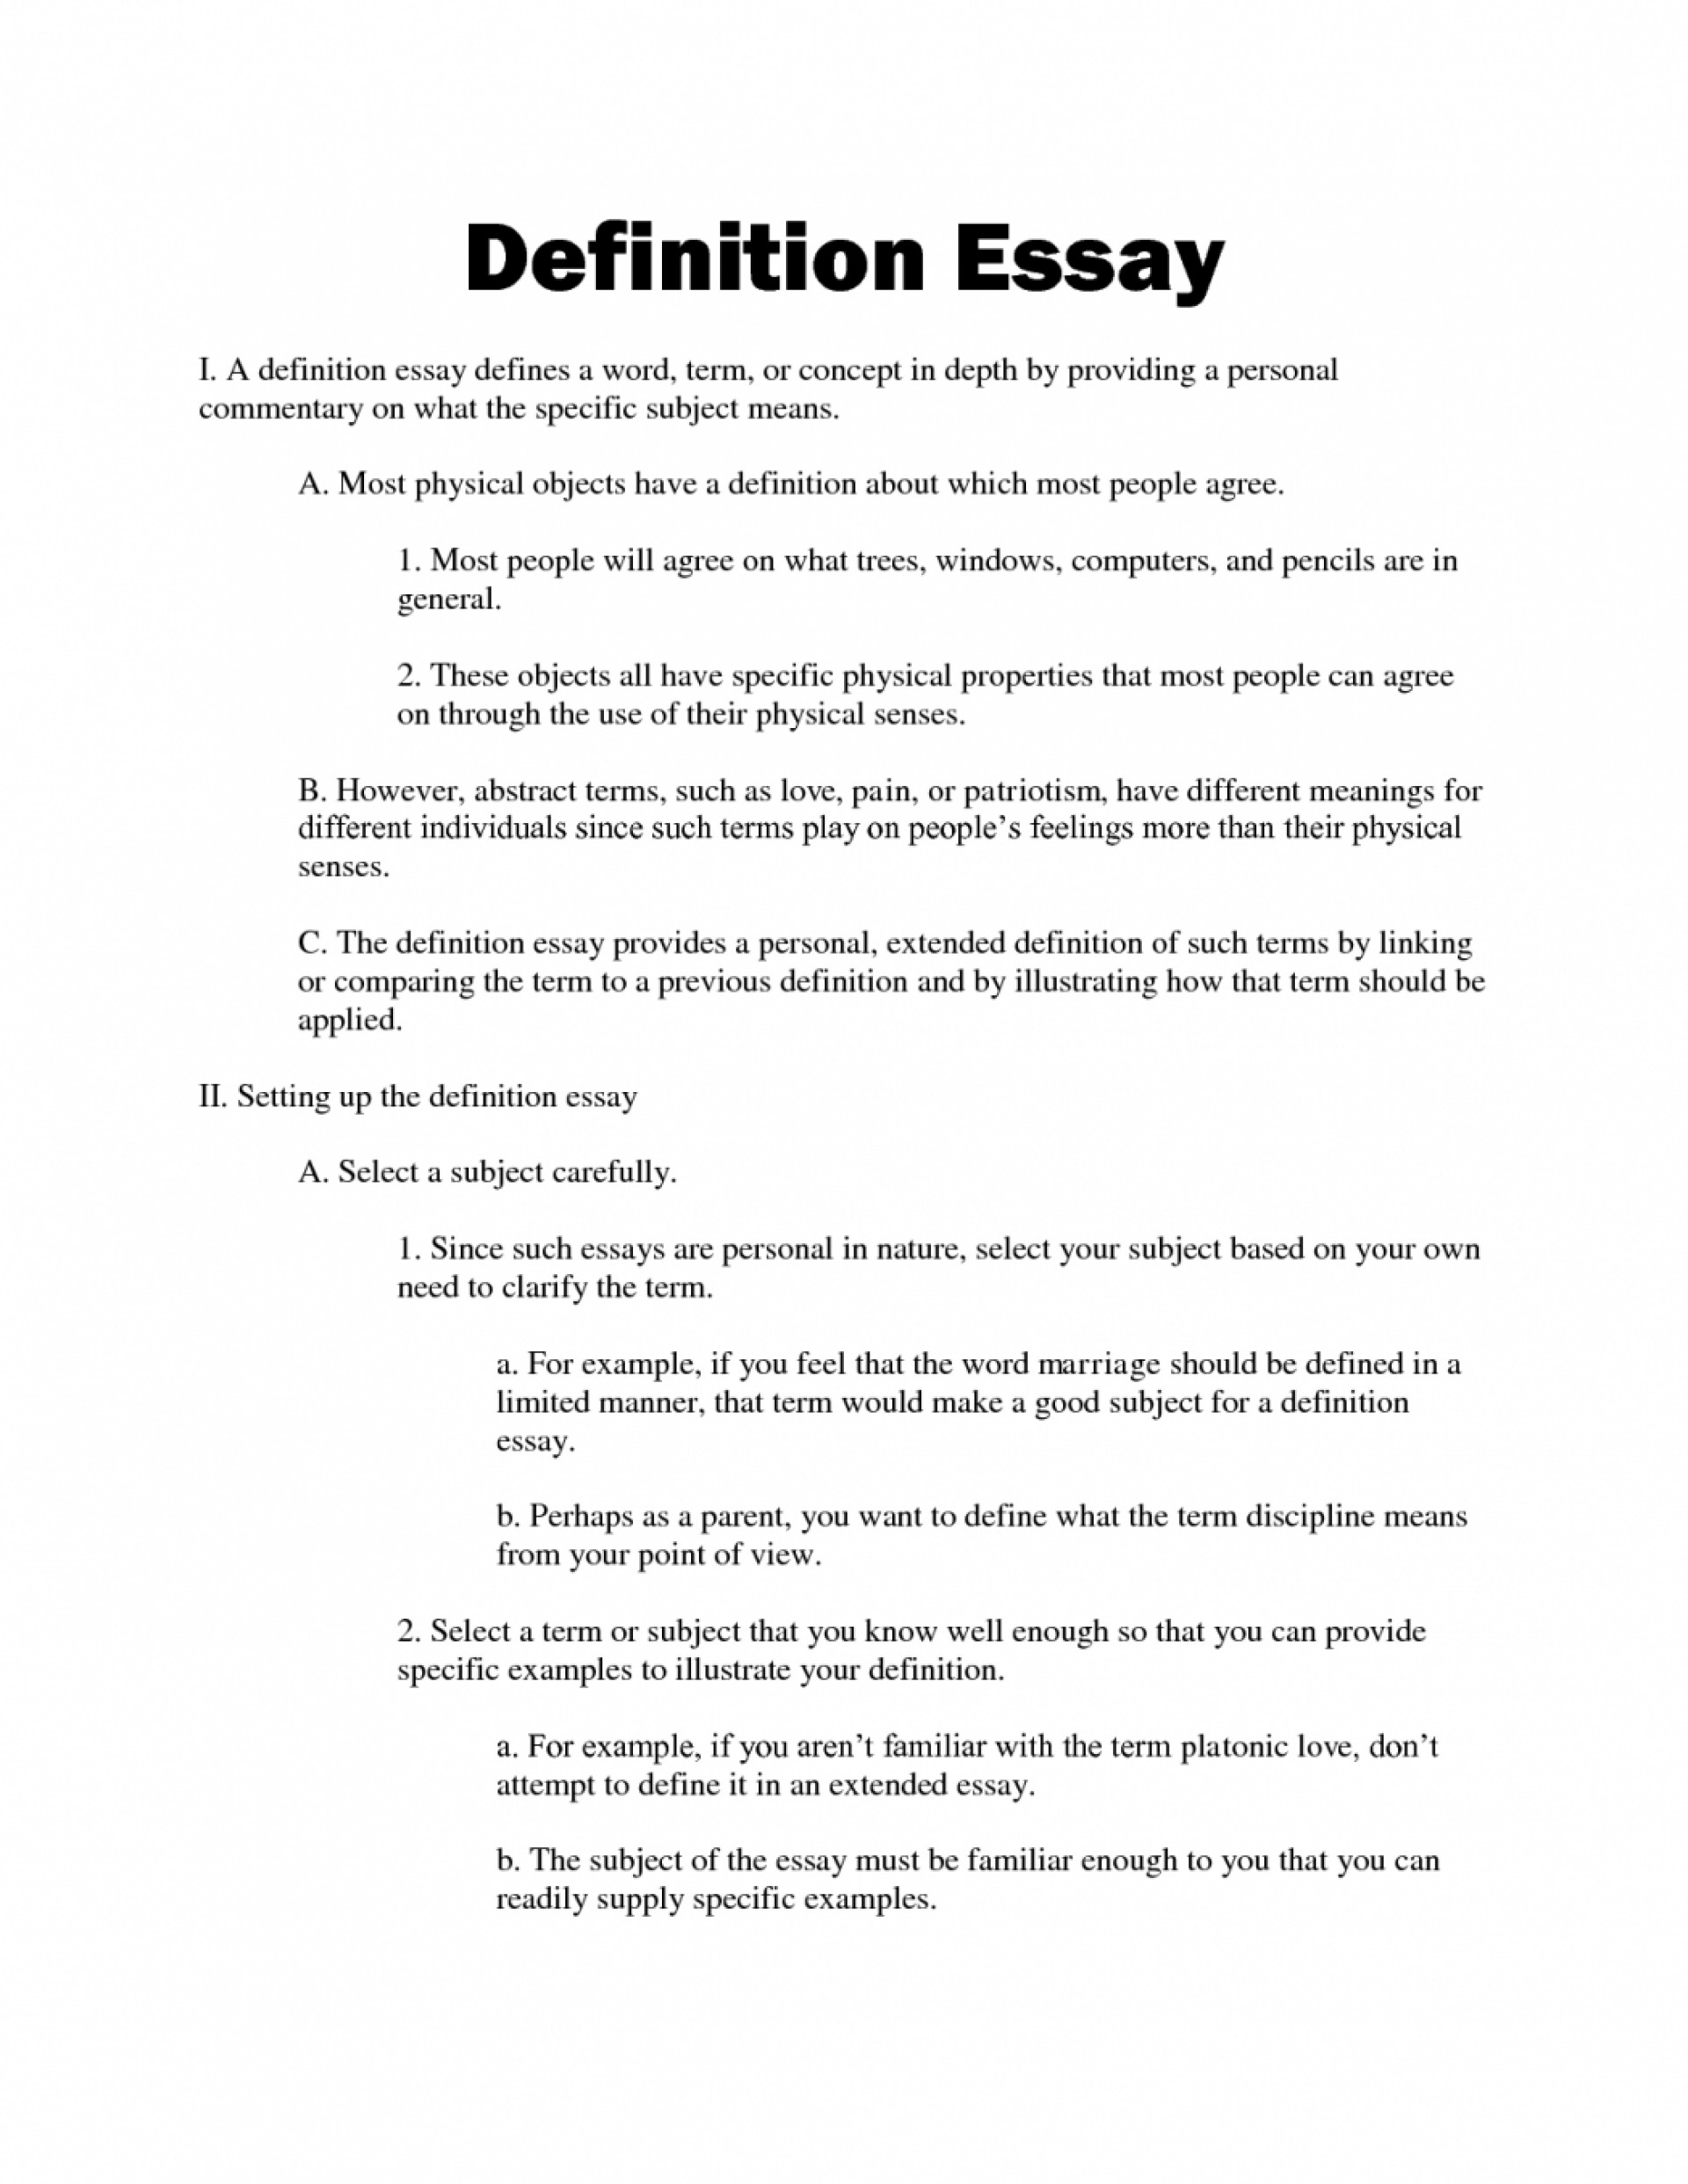 002 Topics For Definition Argument Essay List 1048x1356 Impressive Assignment Ideas Outline 1920